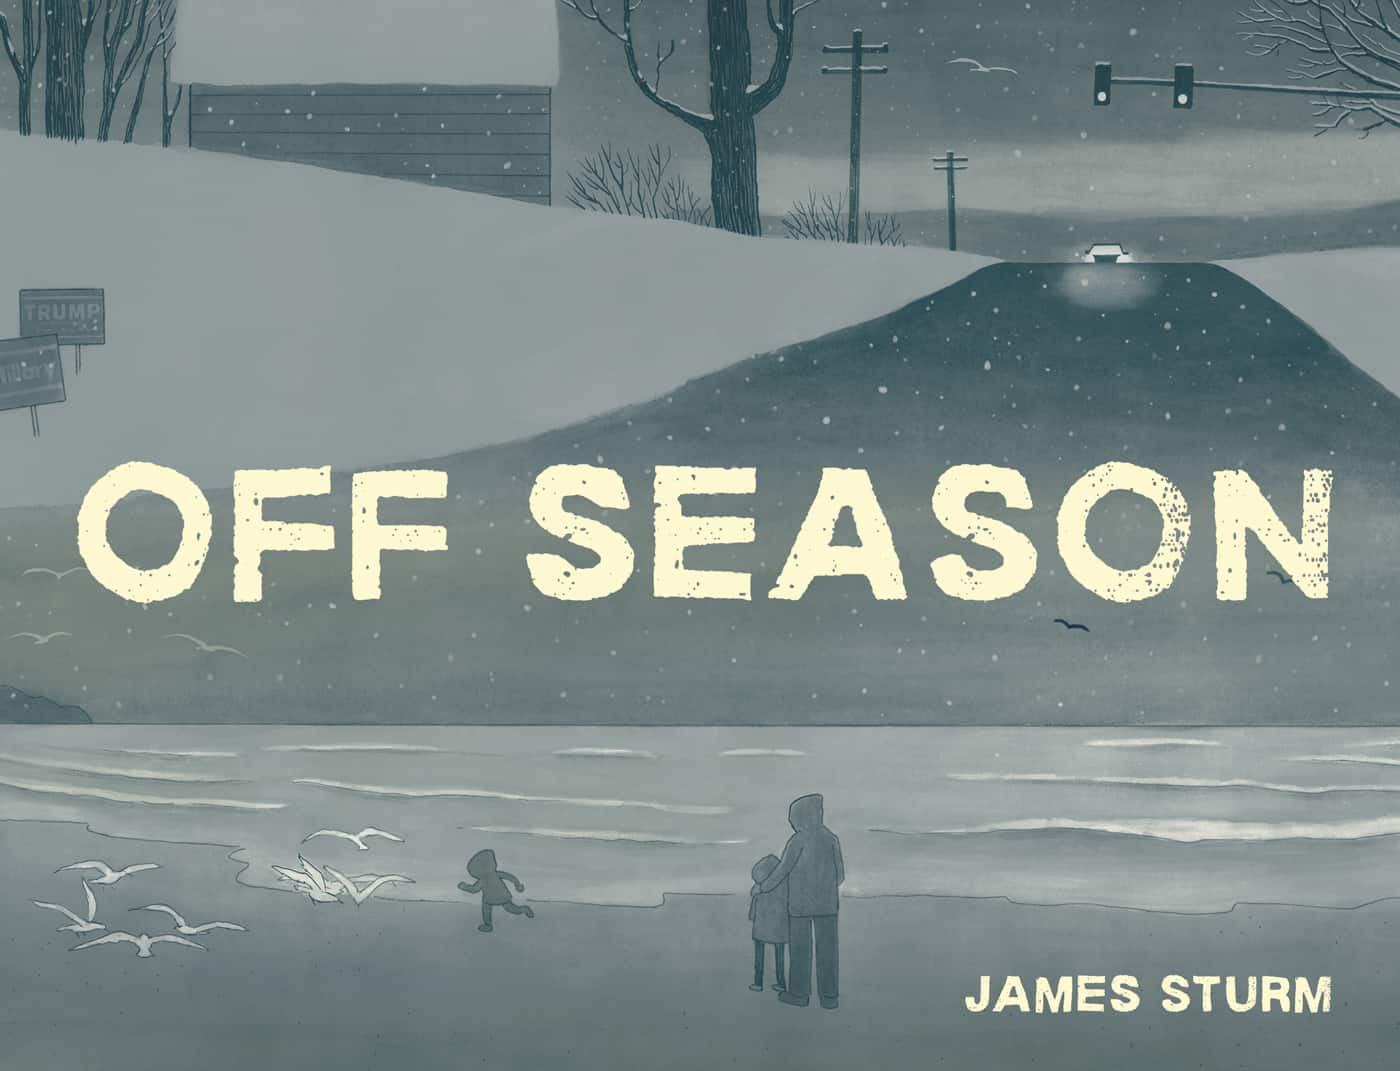 title panel from Off Season by James Sturm